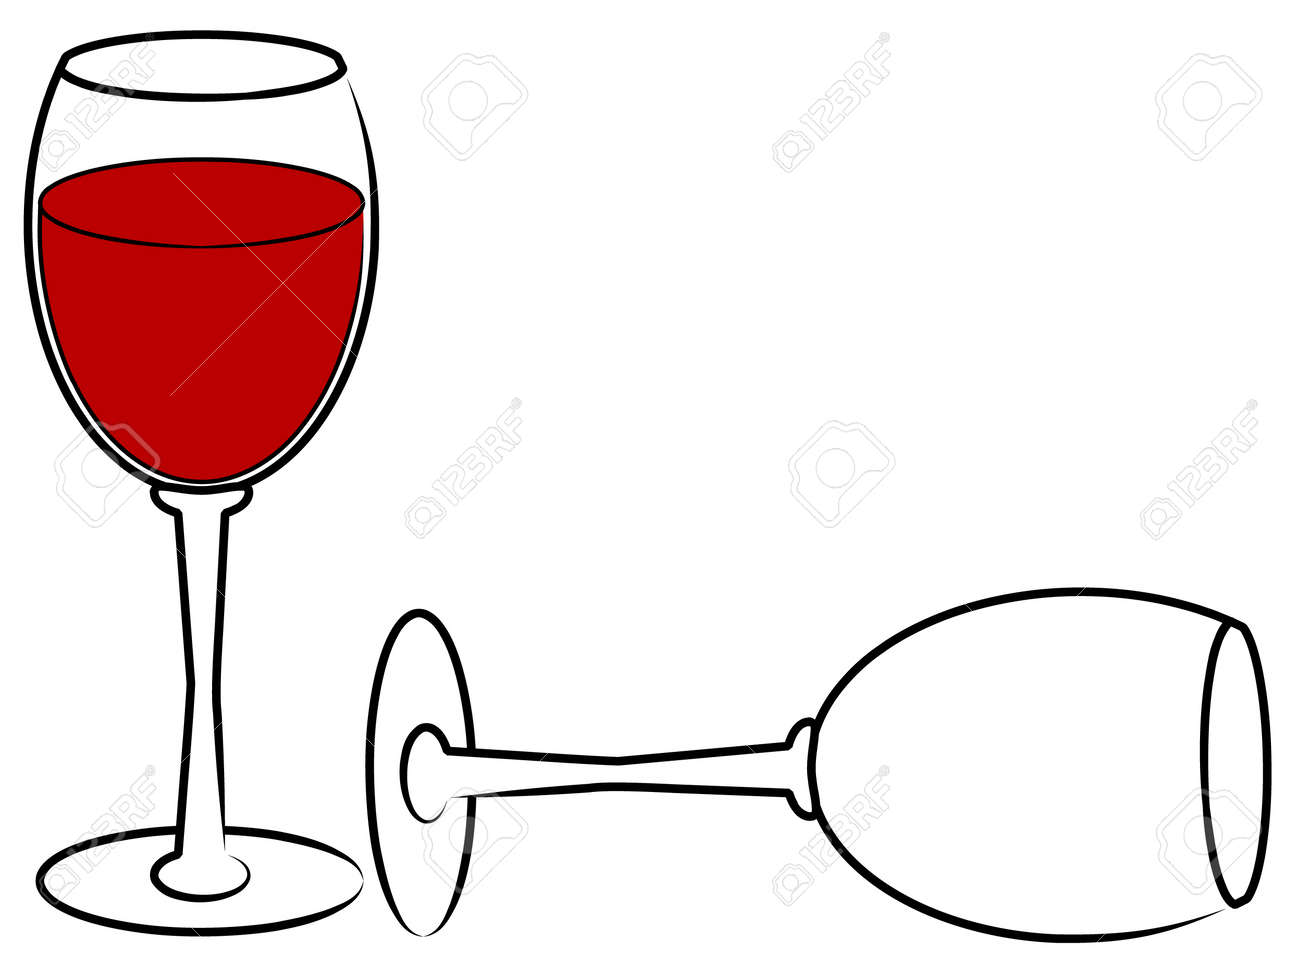 Two Wine Glasses - One Full And One Empty - Vector Royalty Free ...